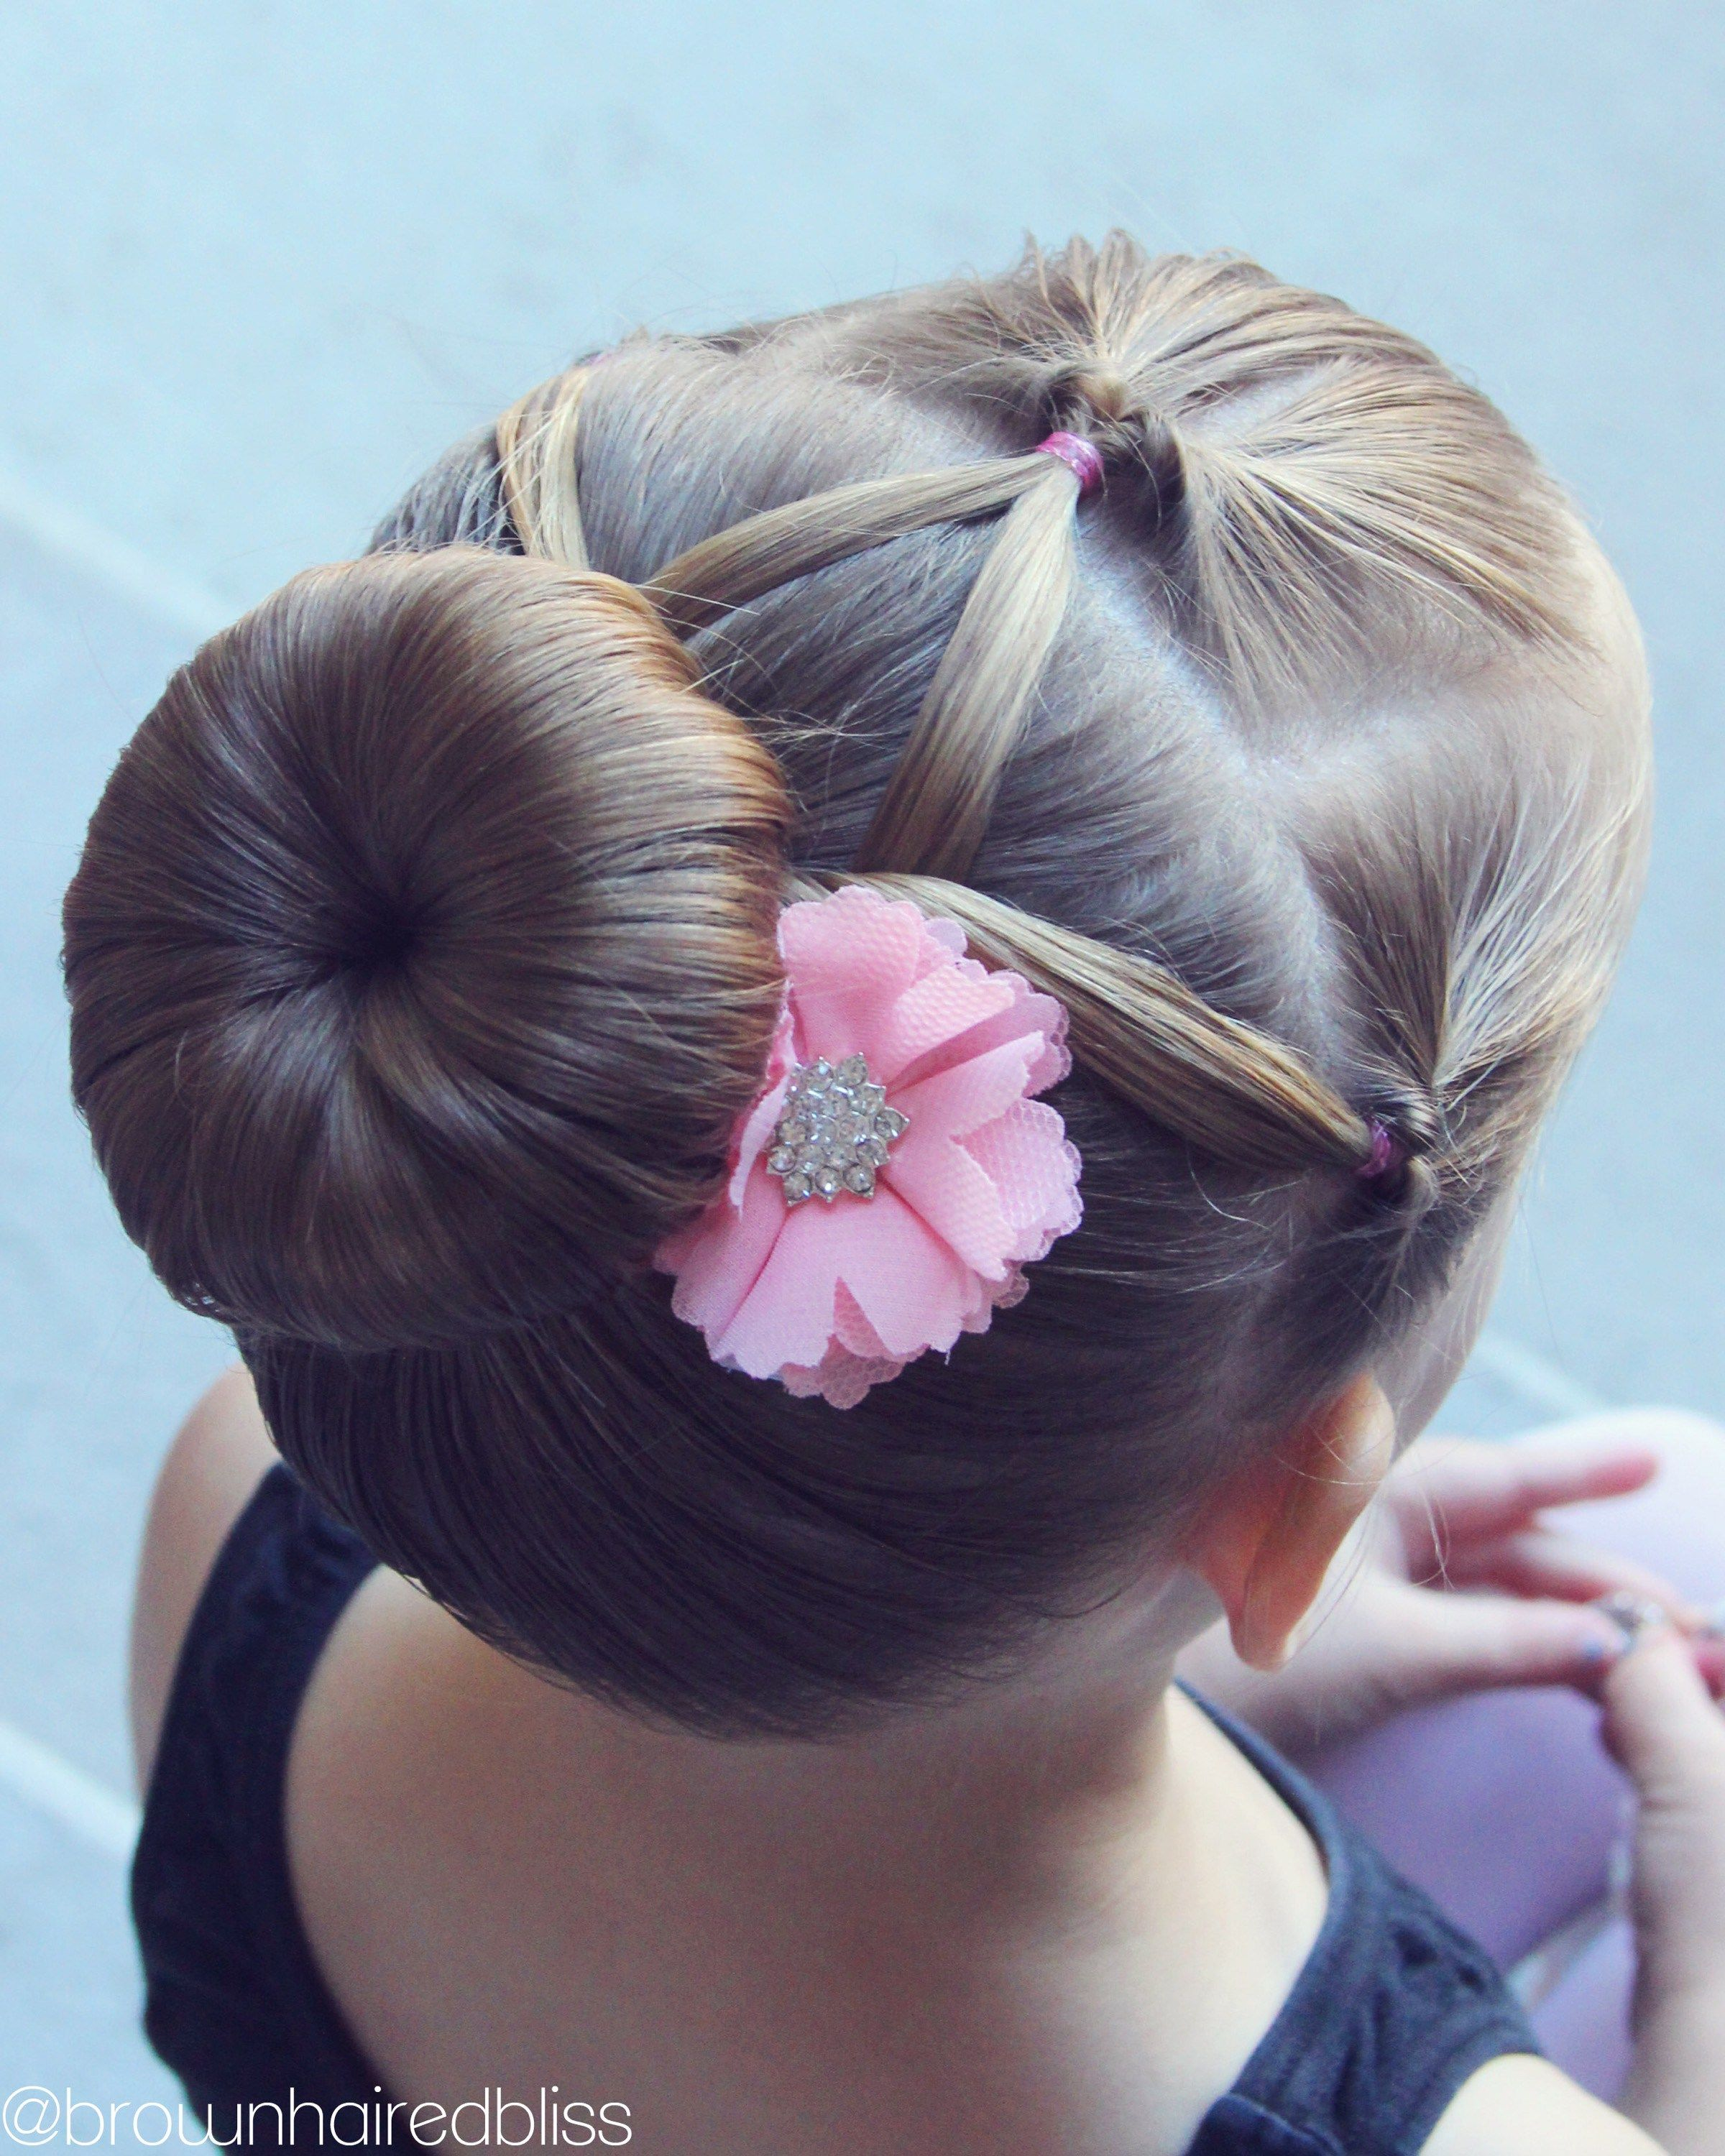 Fa fancy hair bun accessories - My Girls Love To Have Their Hair Up And Pretty For Dance Here S A Style